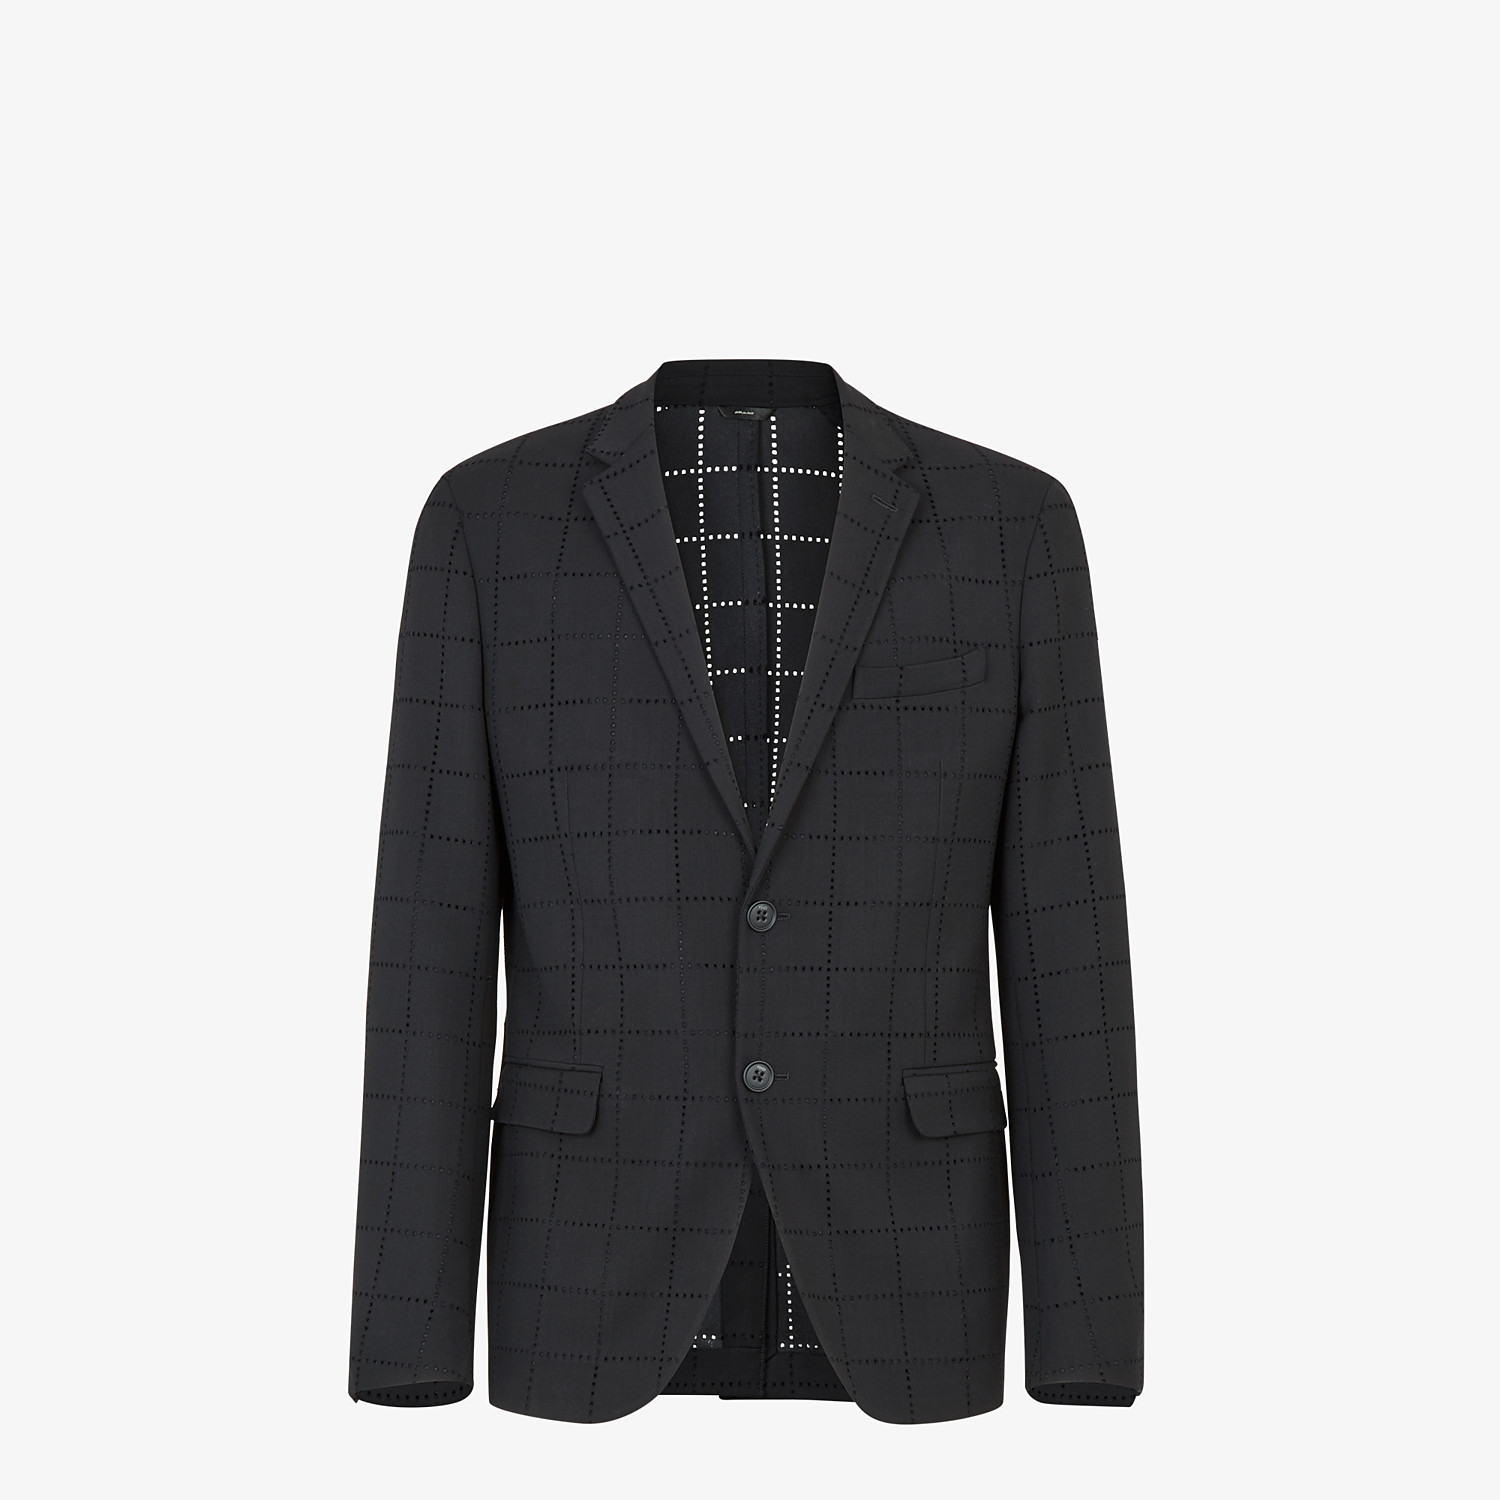 FENDI JACKET - Black wool blazer - view 1 detail